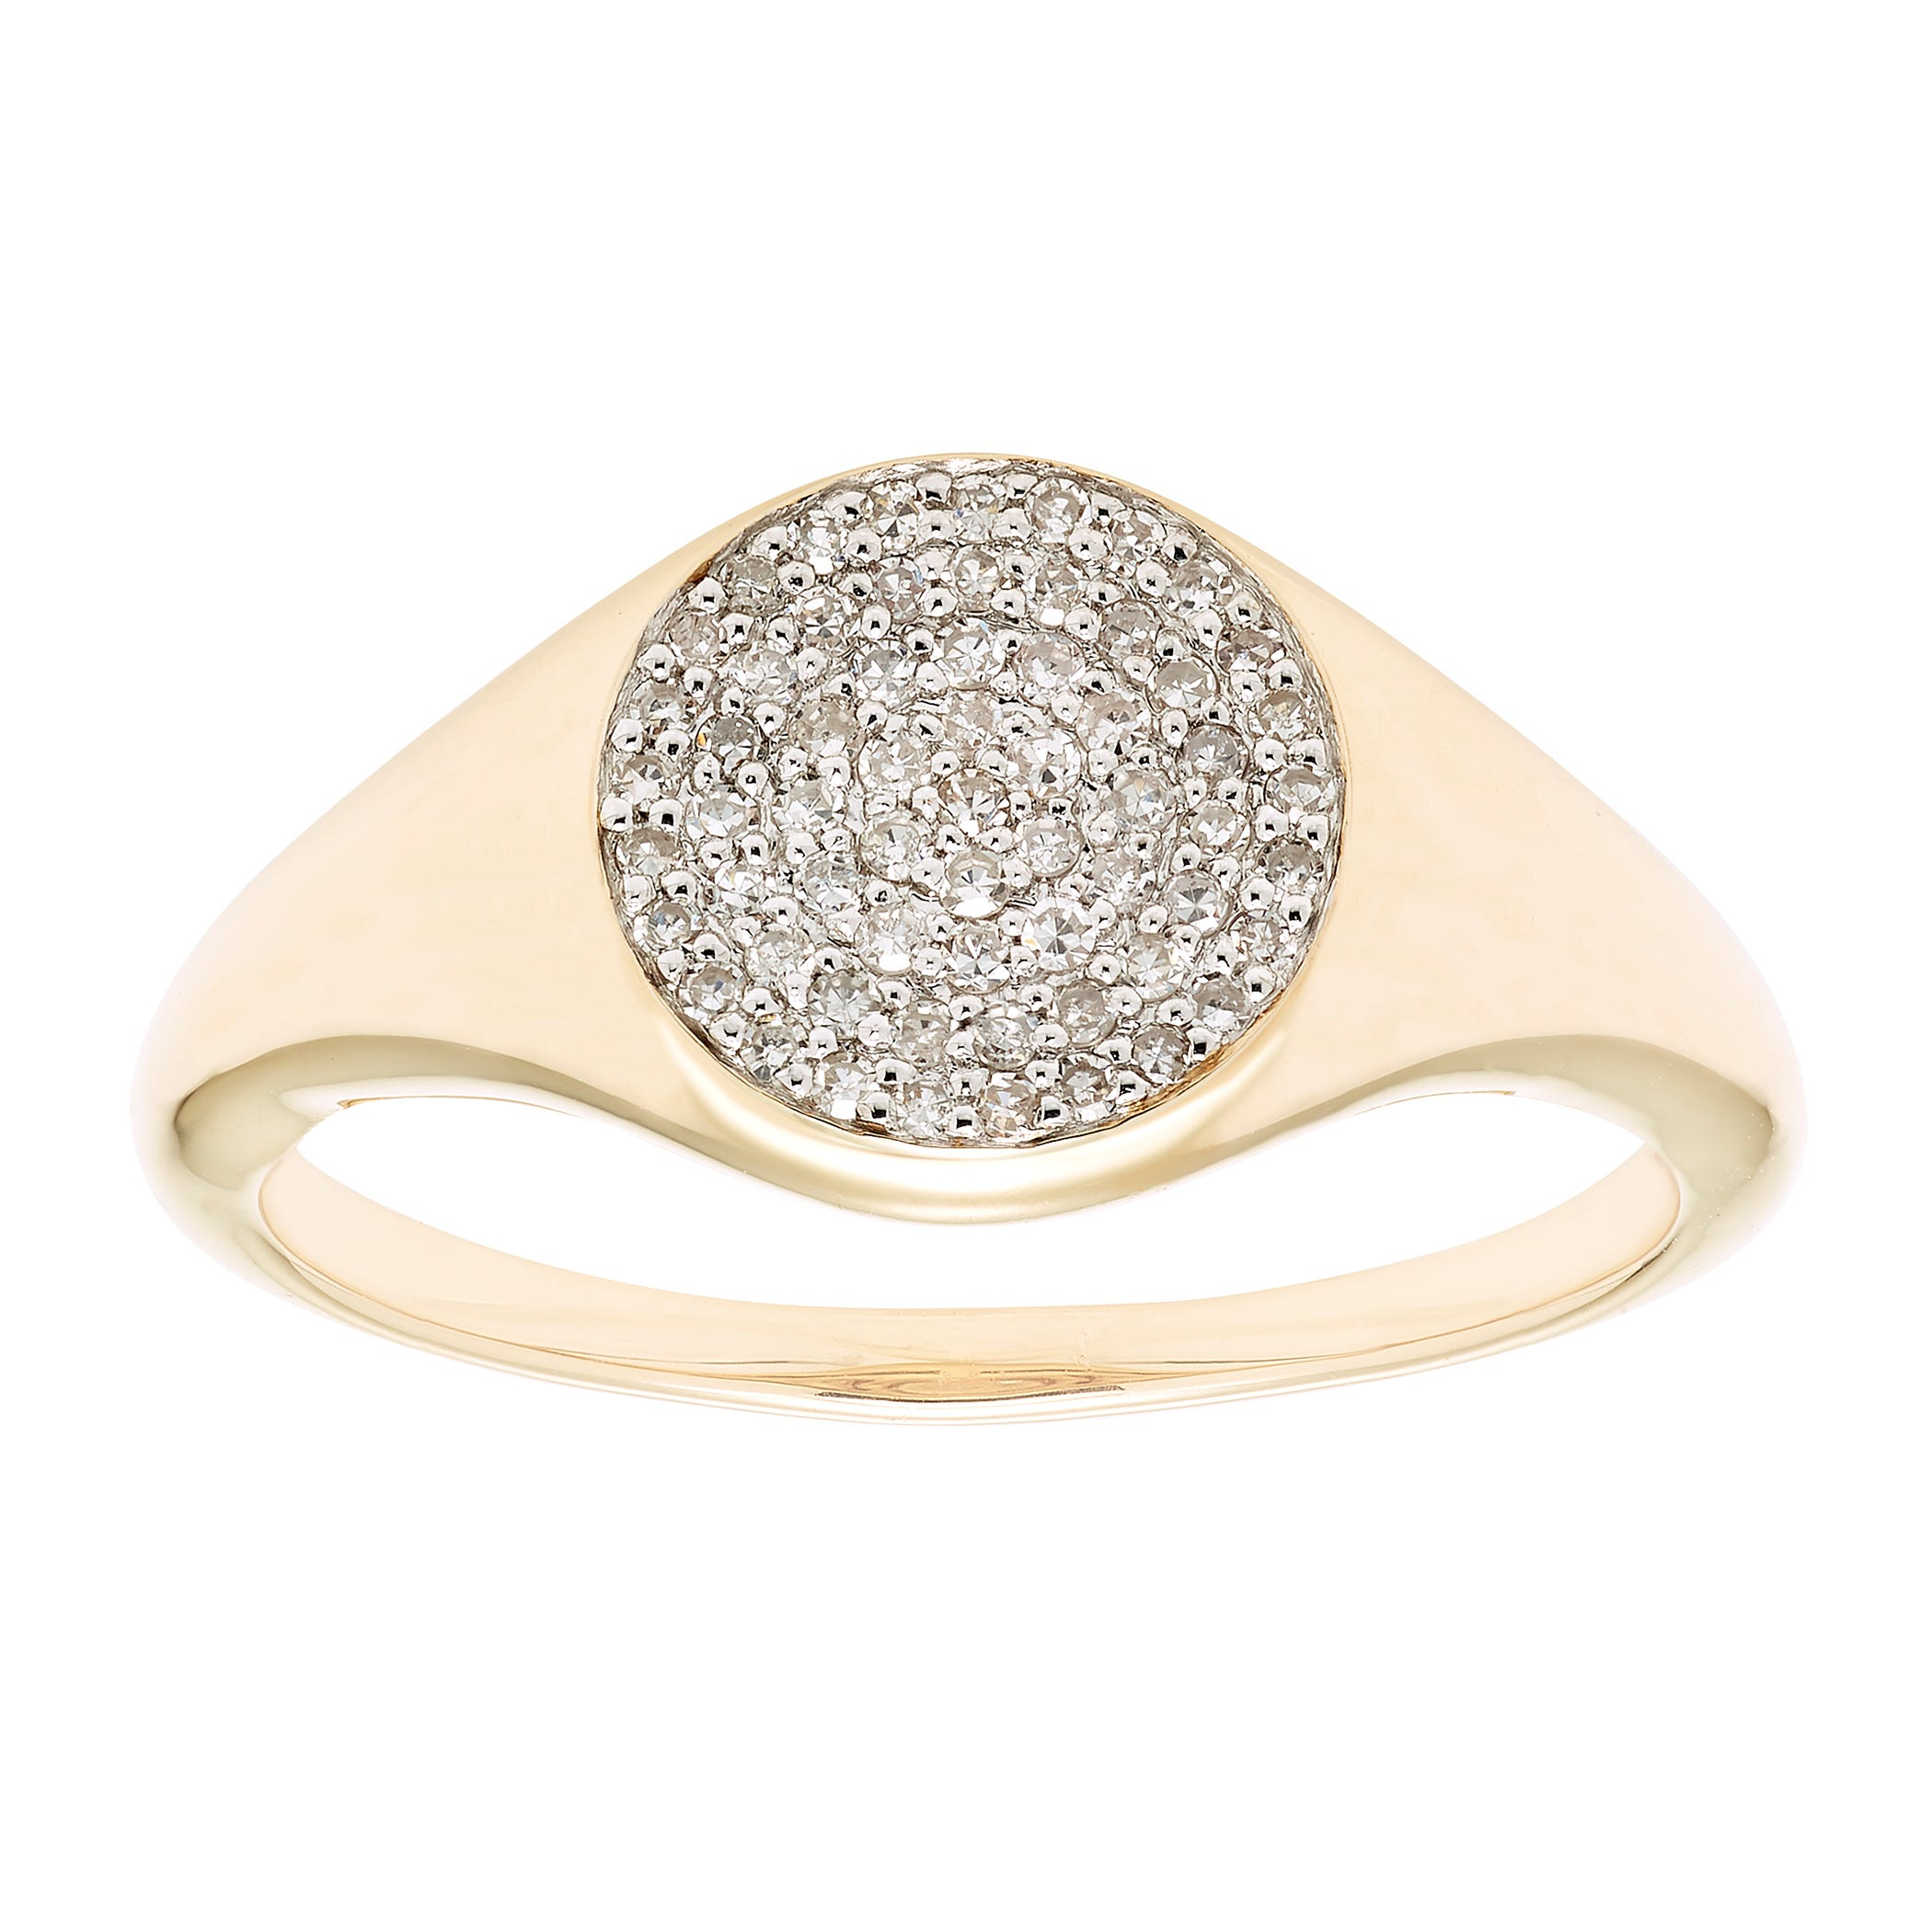 Diamond Pave Signet Ring 1/5ctw. in 14k Yellow Gold